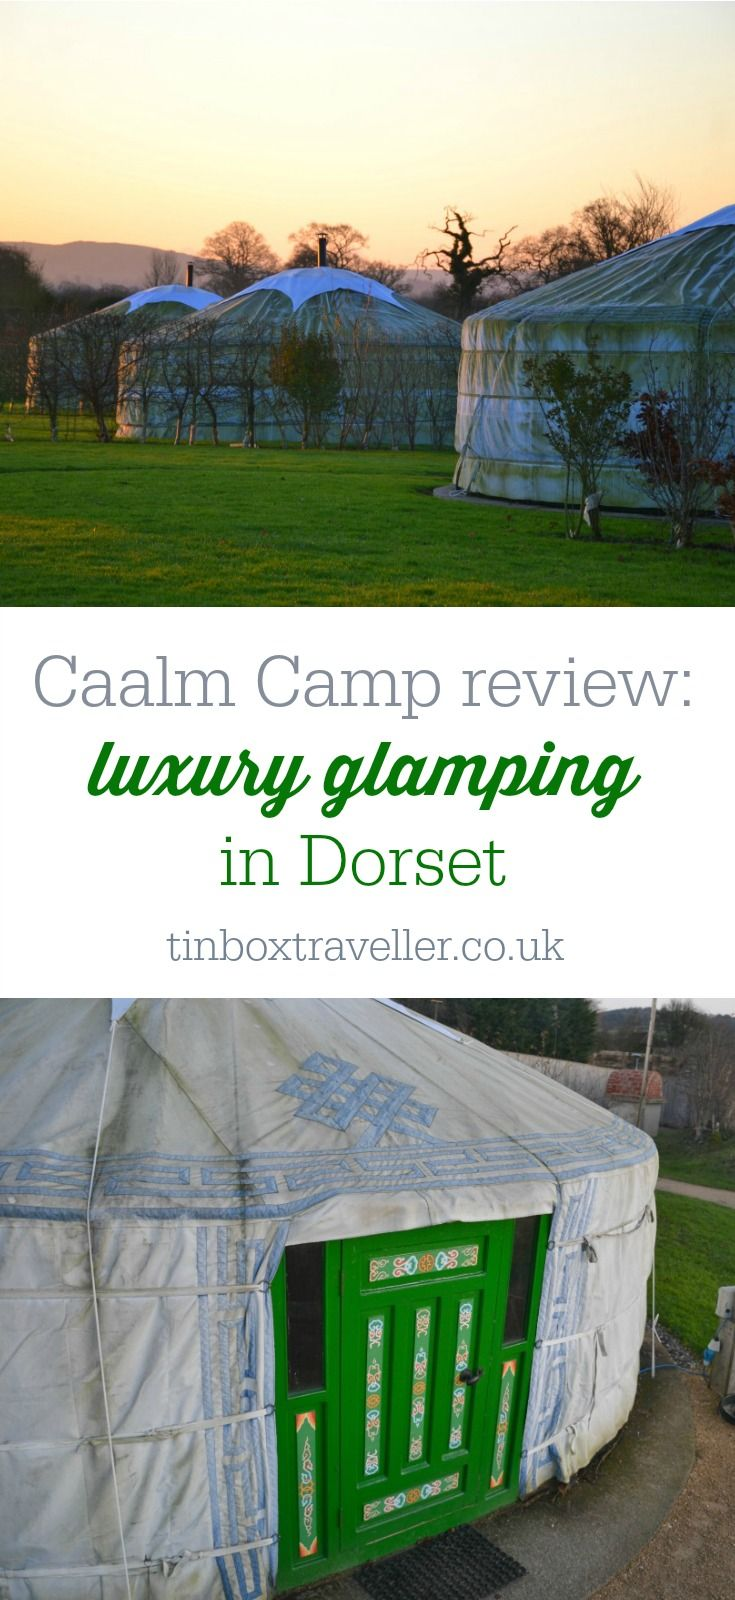 A review of a luxury glamping break with kids at Caalm Camp in Dorset where you can stay in a Mongolian yurt in the rolling countryside of South West England #glamping #camping #travelblog #travel #familytravel #England #Dorset #UKtravel